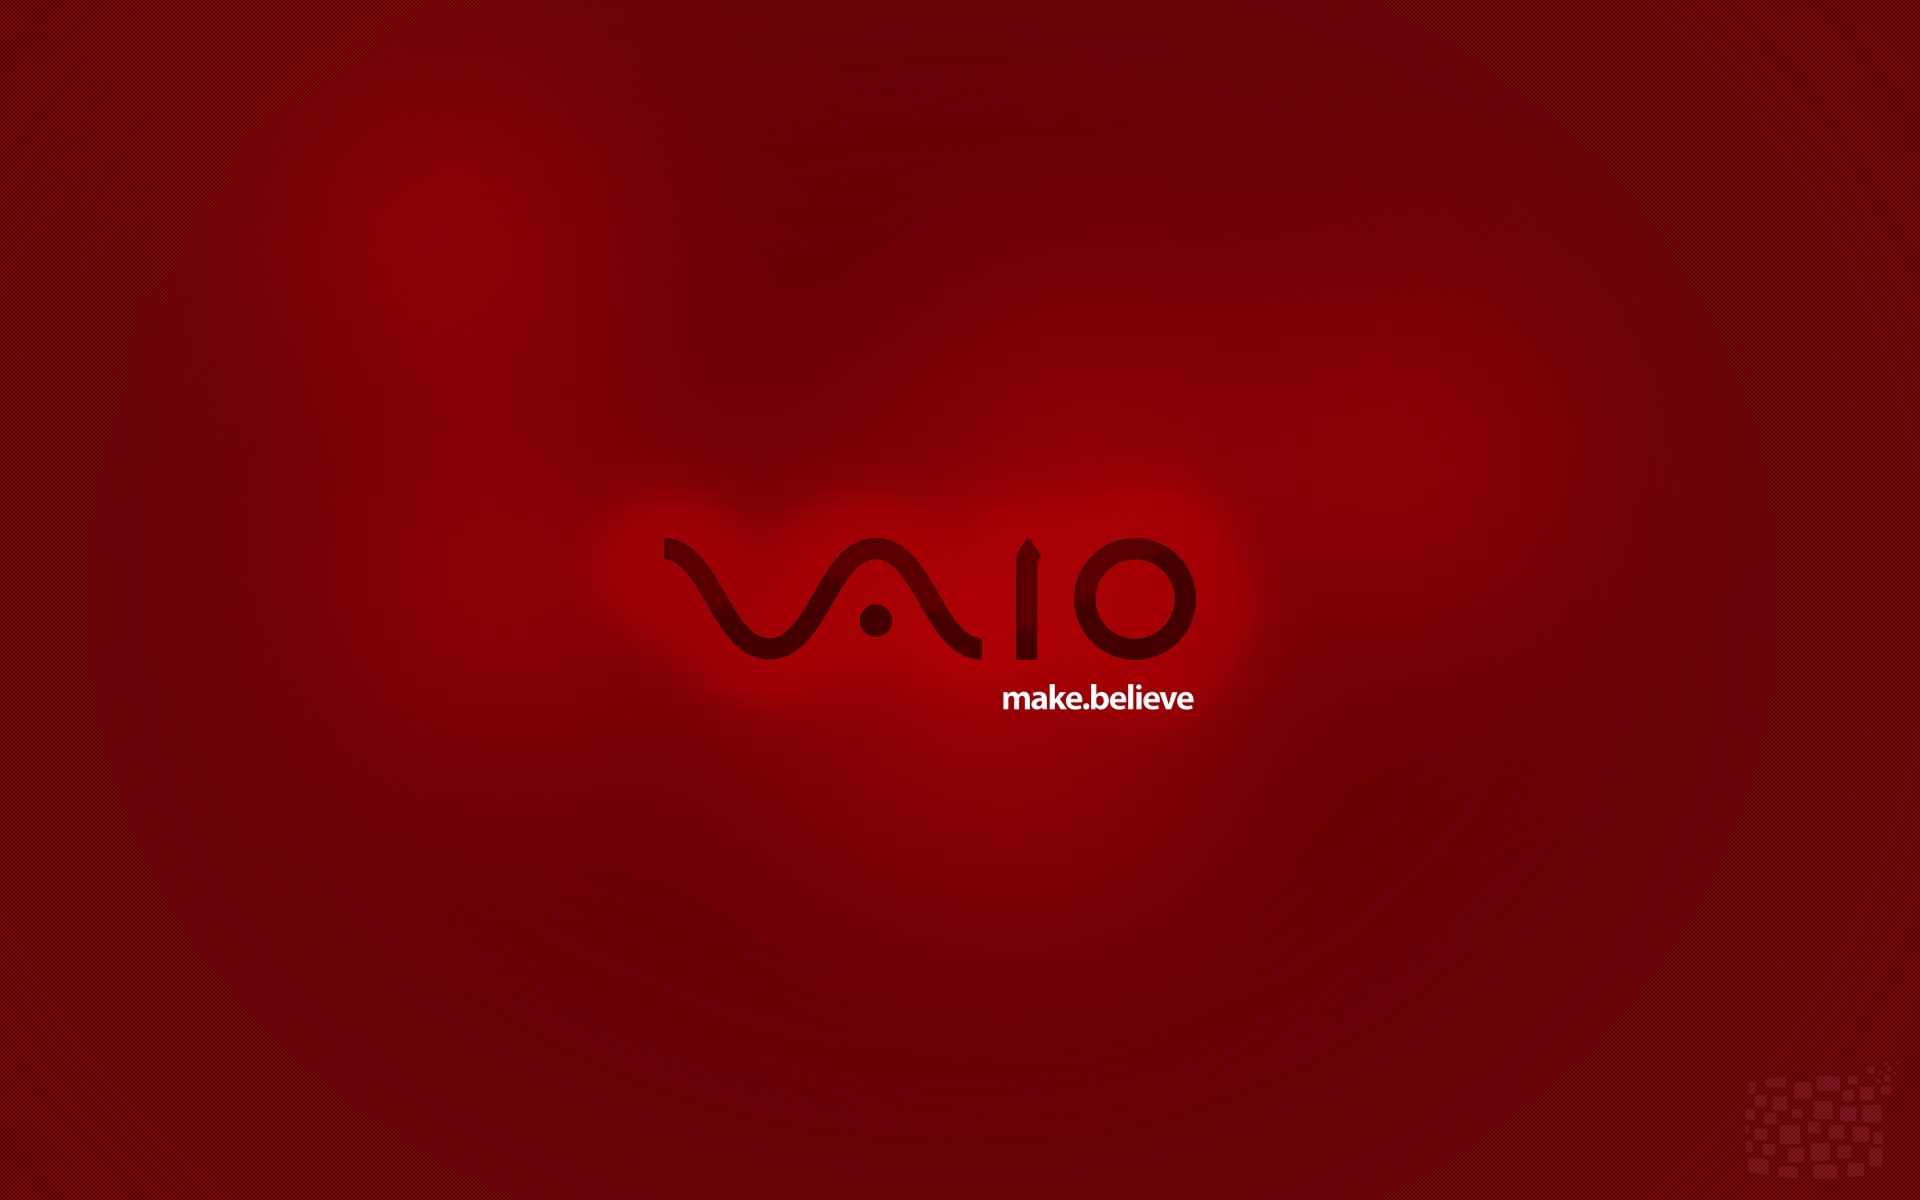 Sony vaio wallpaper full hd wallpaper and background image for Sfondi vaio